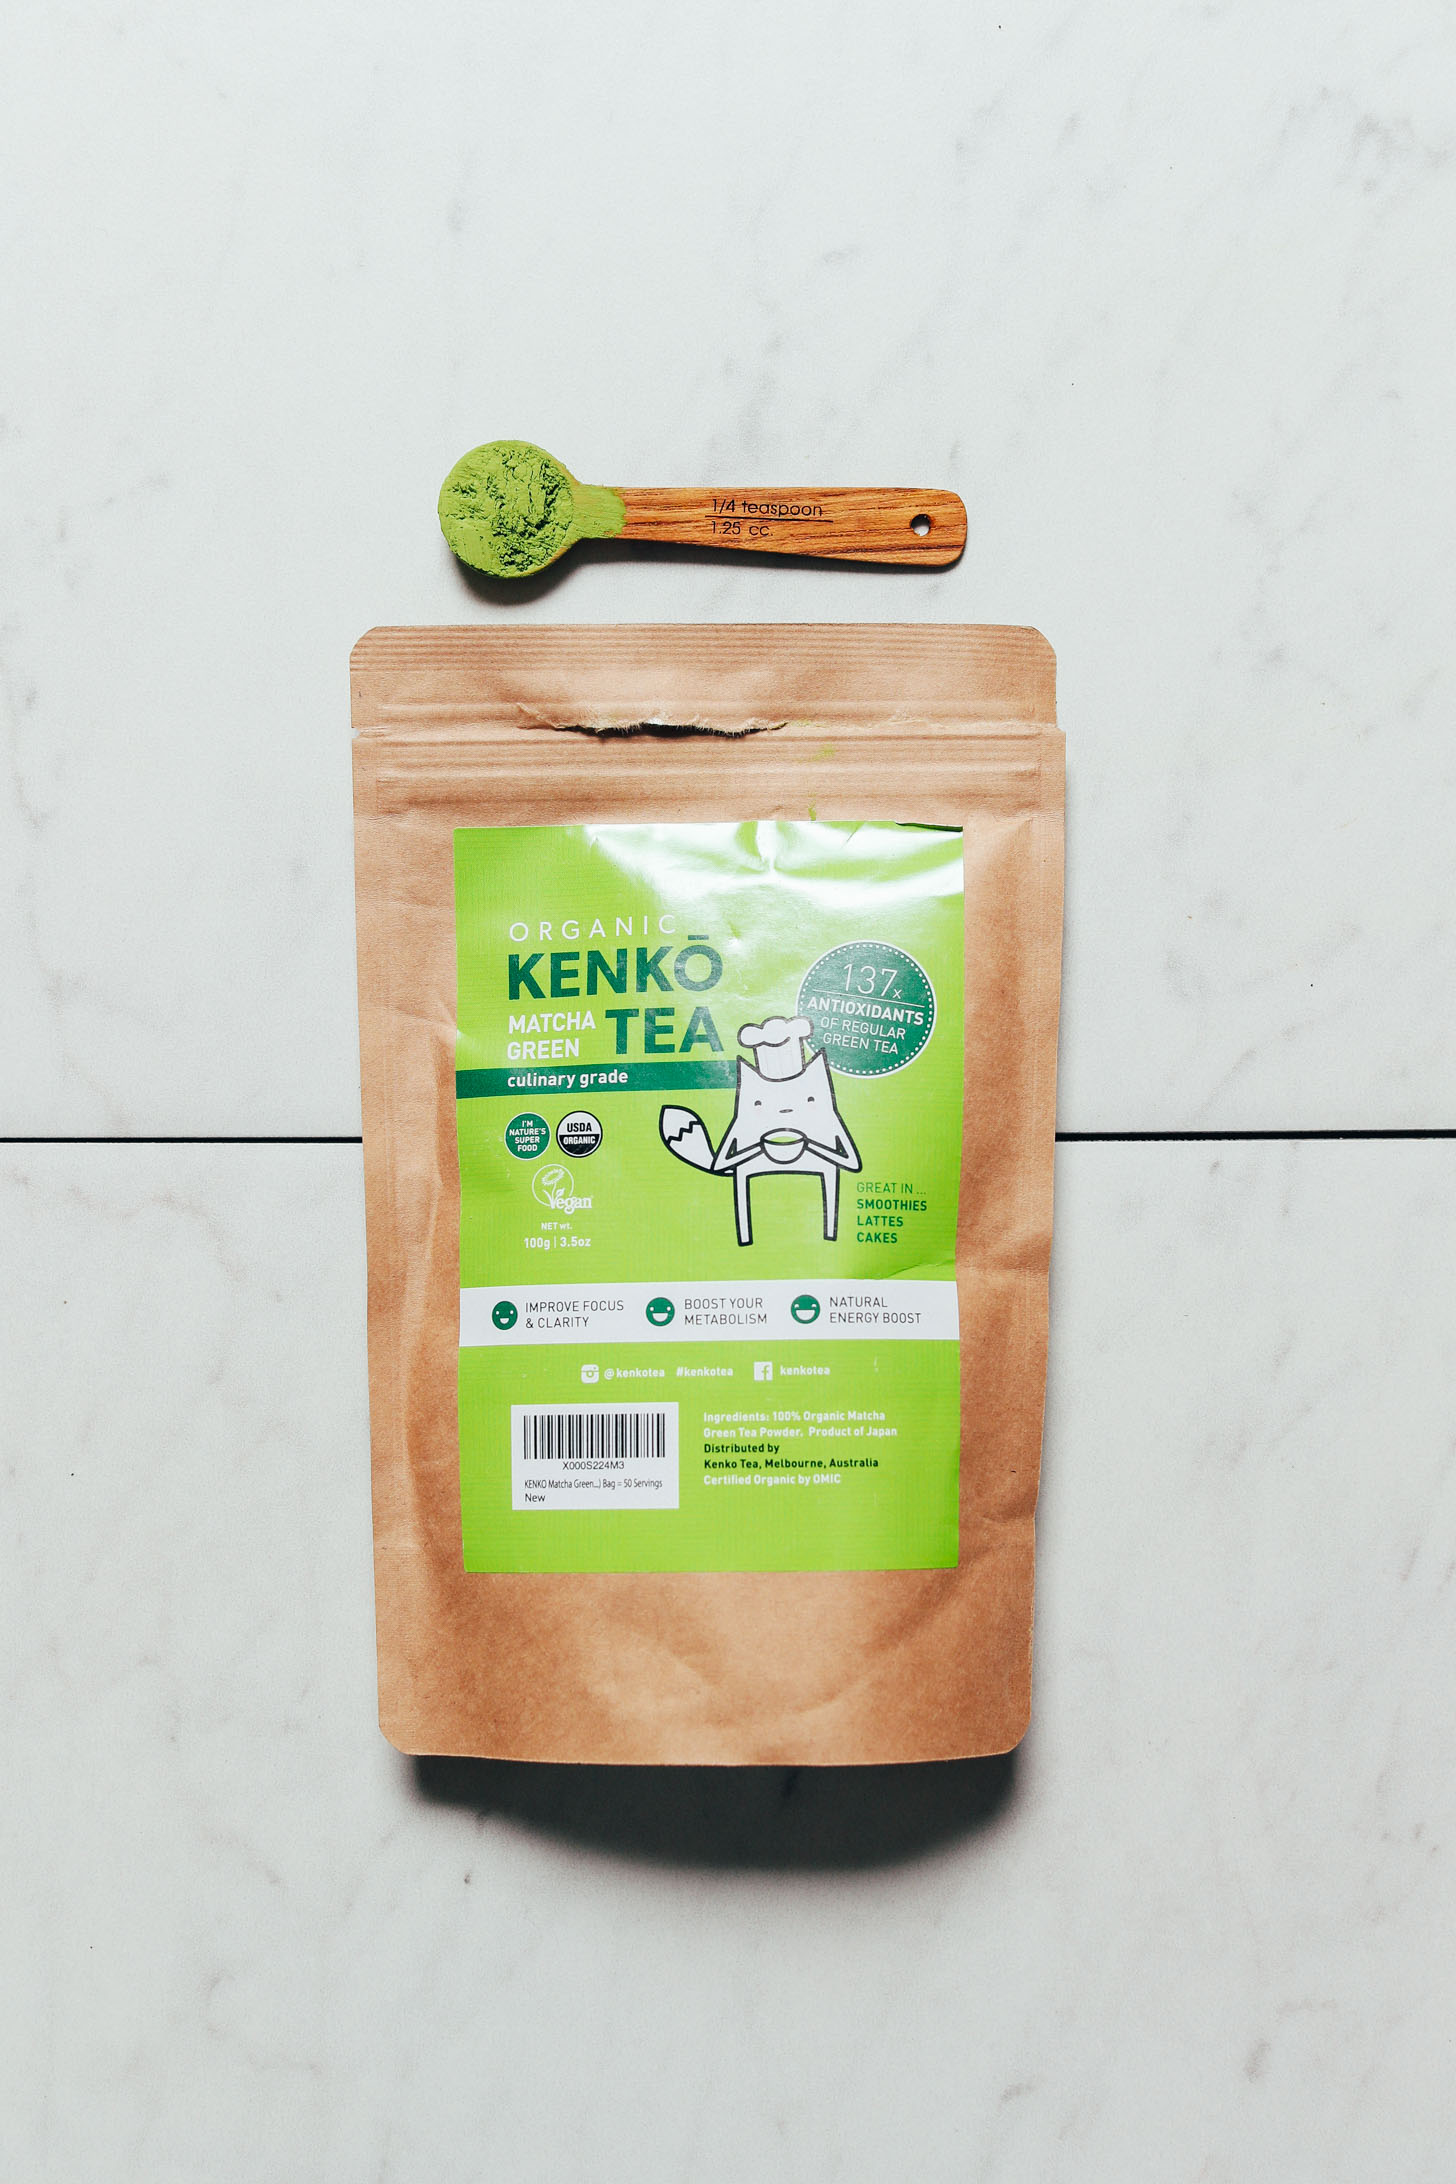 Spoonful and package of Kenko Culinary Matcha for our unbiased review of matcha brands